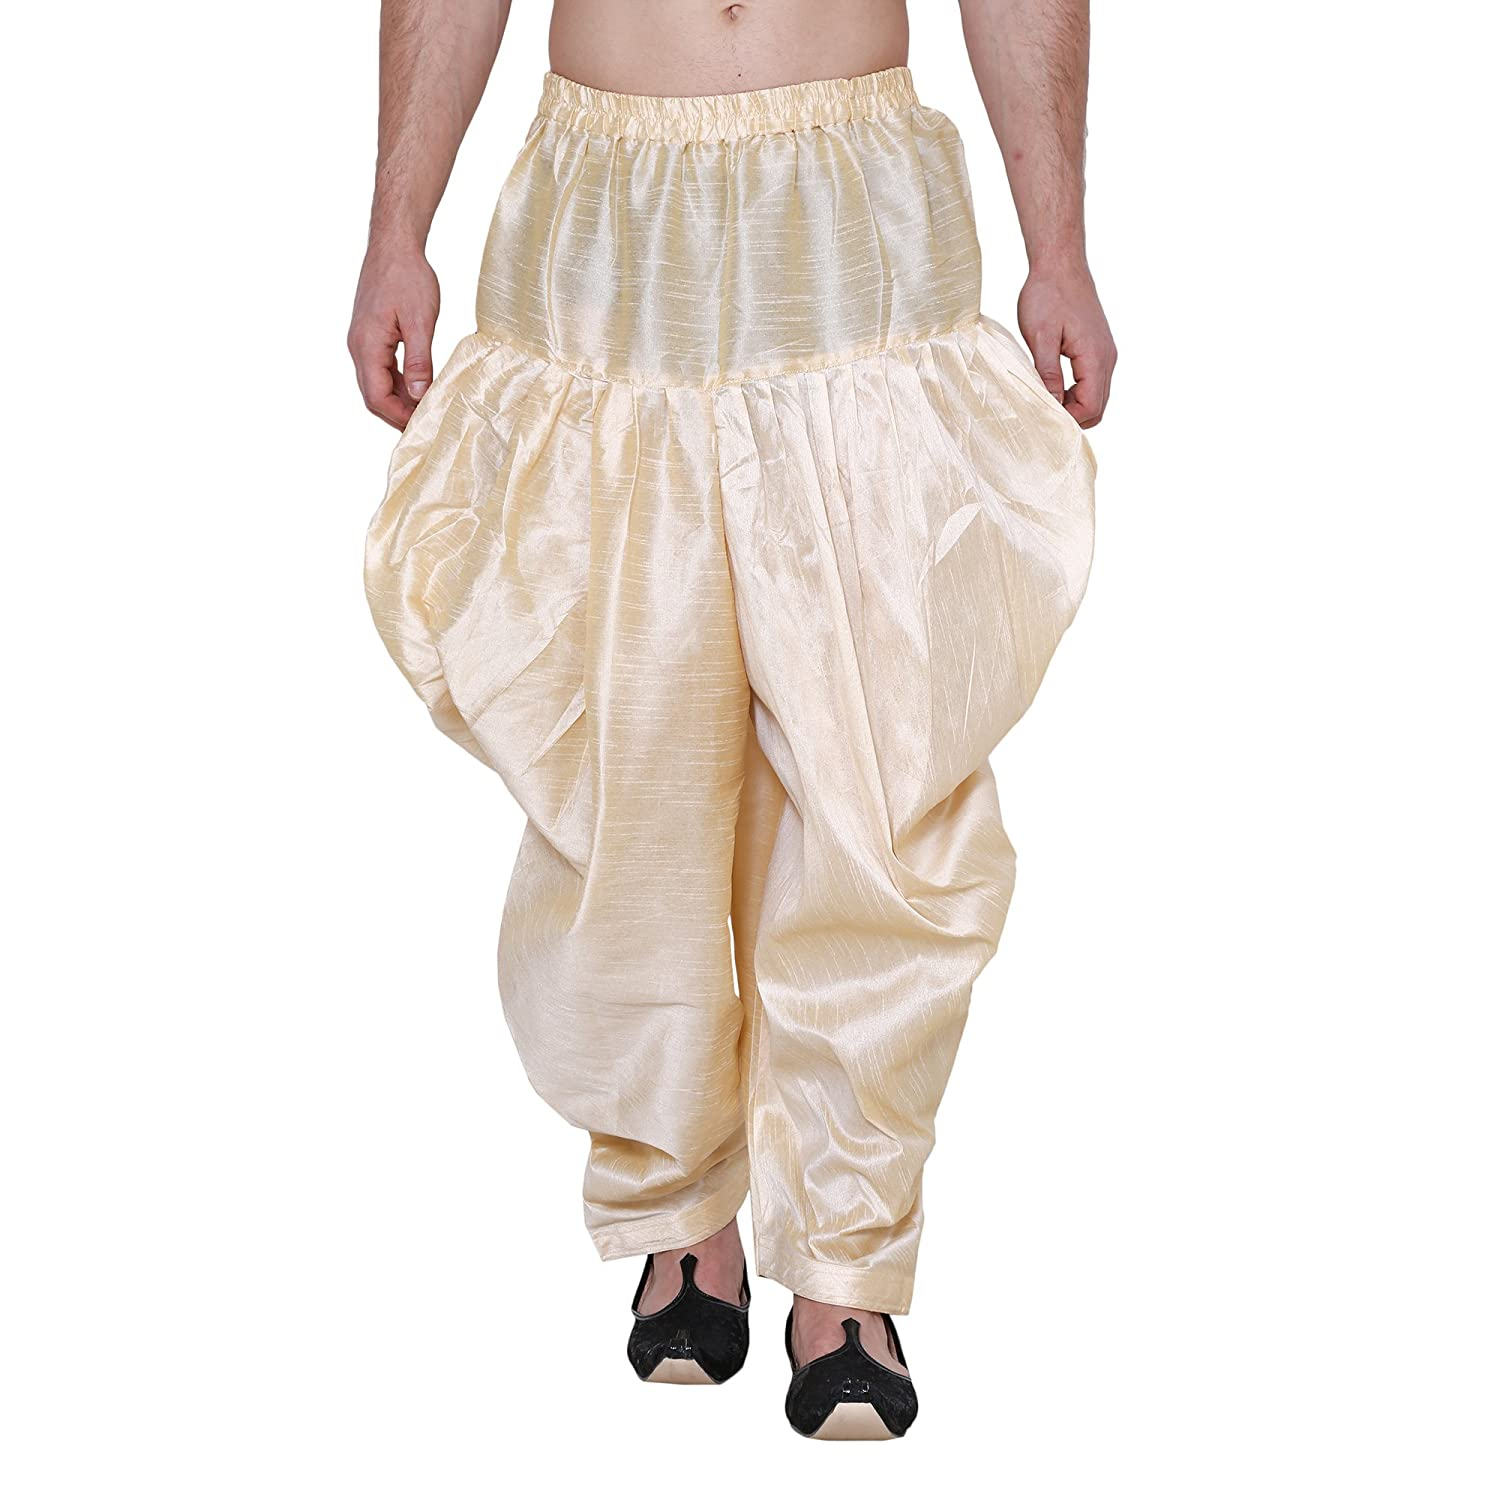 Royal Kurta Men's Silk Blend Patiala Salwar Alladin Pant GOLD-PATIALA-SALWAR-$P